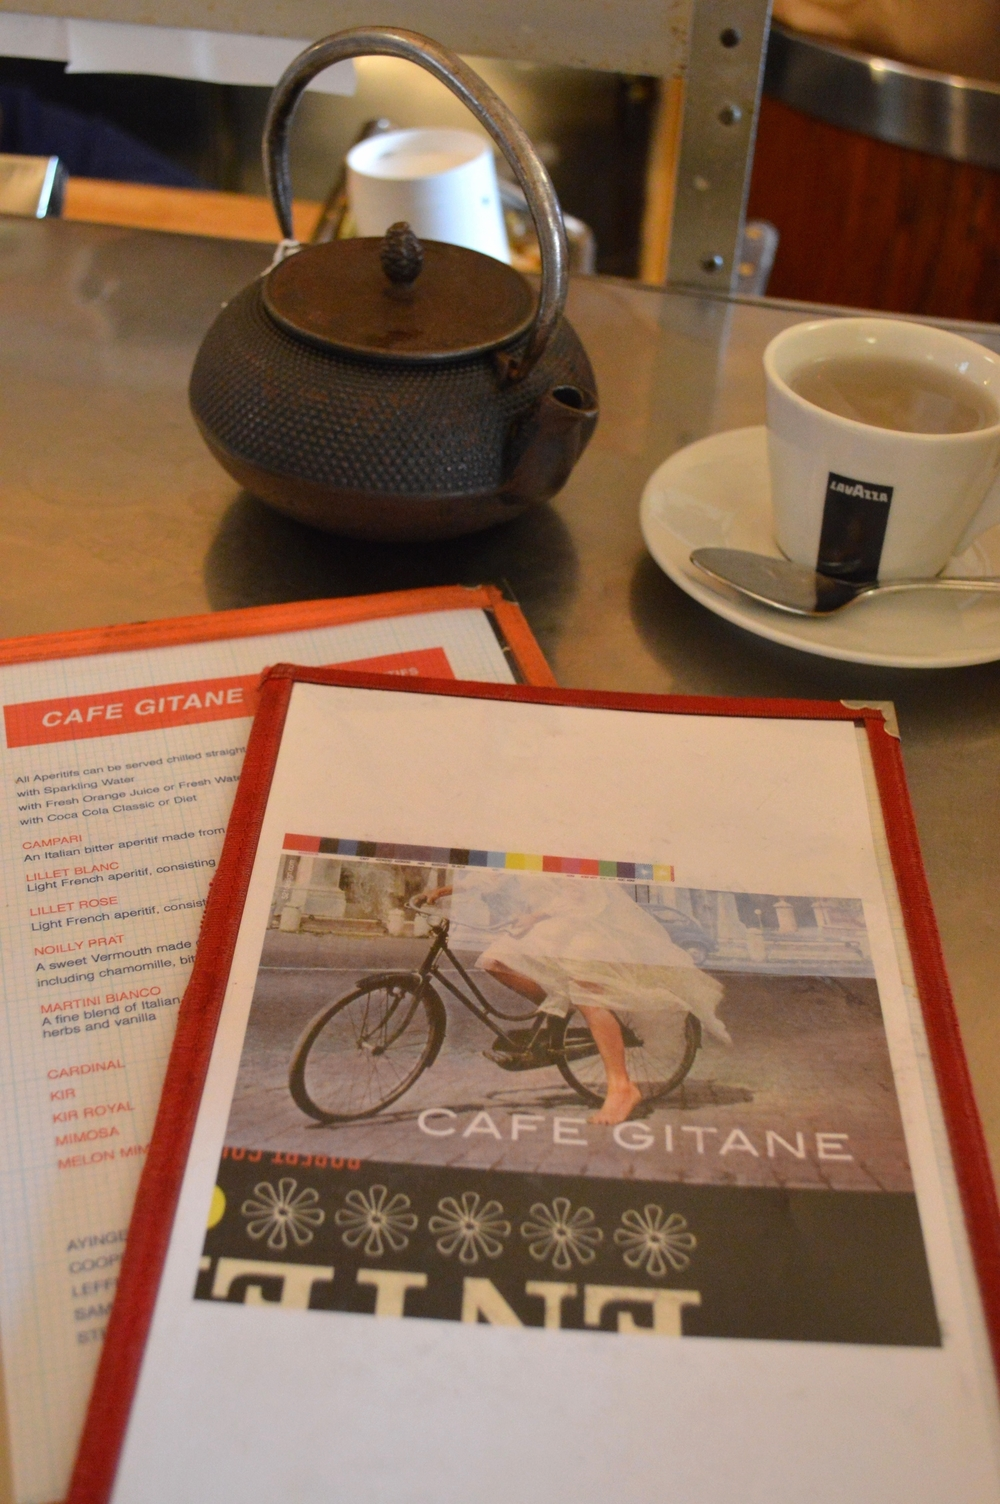 Cafe-Gitane-Menu-LaurenSchwaiger-Travel-Blog.jpg